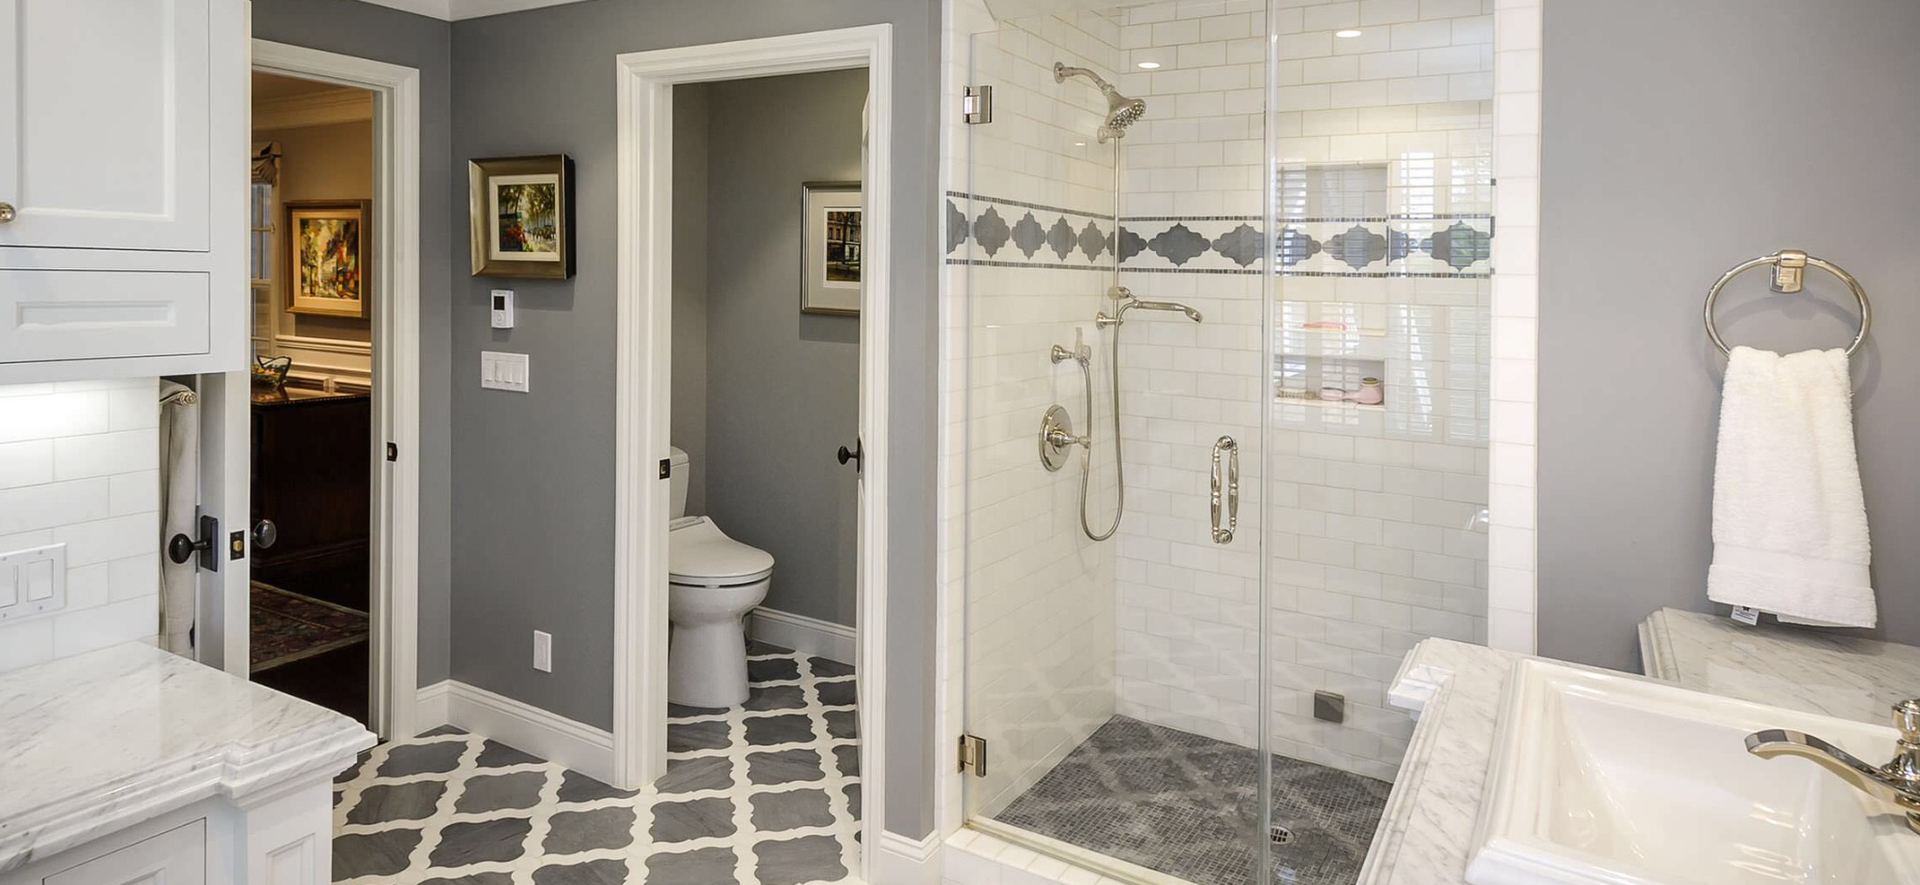 frameless shower enclosures shower doors aspire glass ocean turn your bathtub into a convenient shower solution without compromise they provide a more enjoyable showering experience